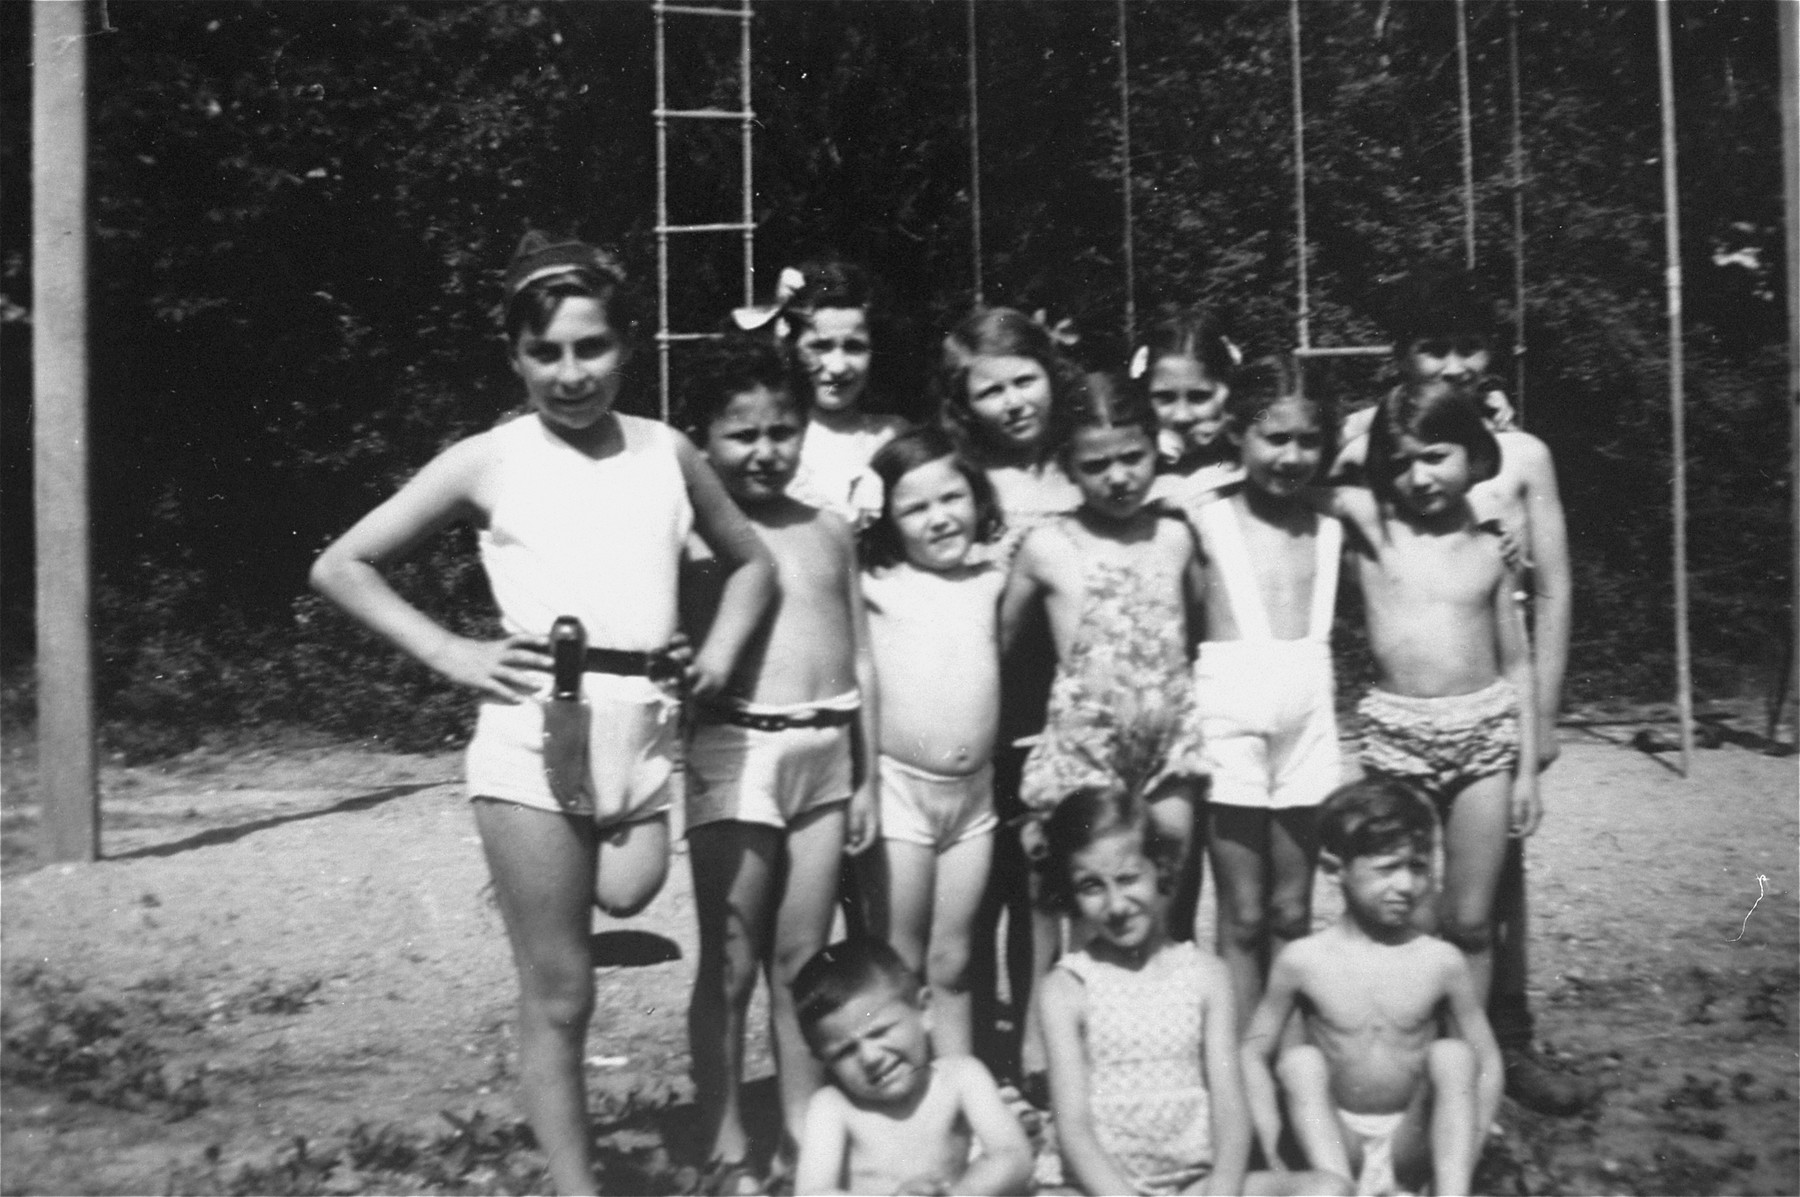 Group photograph taken at an orphanage for Jewish children in Verneuil.   Among these children is Evi Weisz.